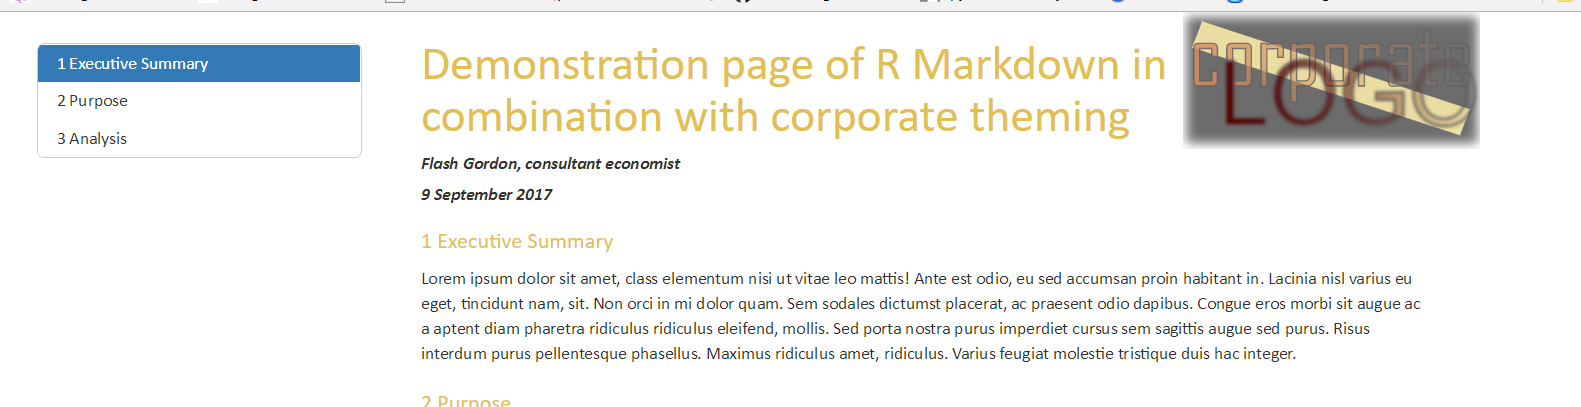 R Markdown for documents with logos, watermarks, and corporate styles by @ellis2013nz